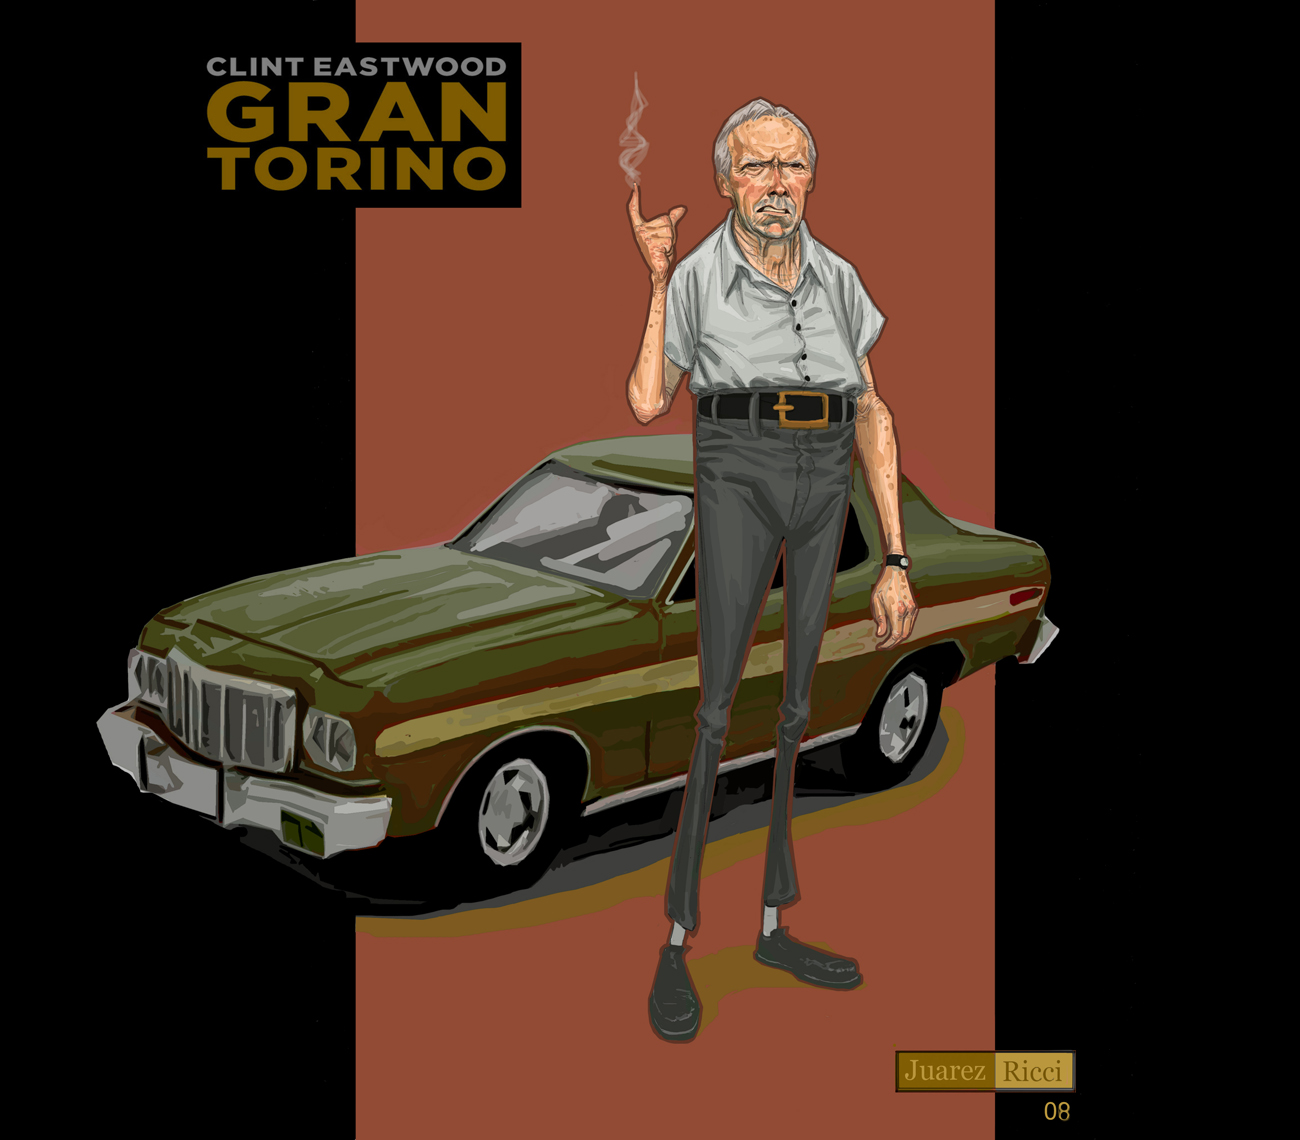 an analysis of the movie gran torino directed by clint eastwood Lectured by professor gleberzon, phd  clint eastwood dispels the myth of ageism and illustrates he still has the right stuff in the movie, gran torino (2008) the.